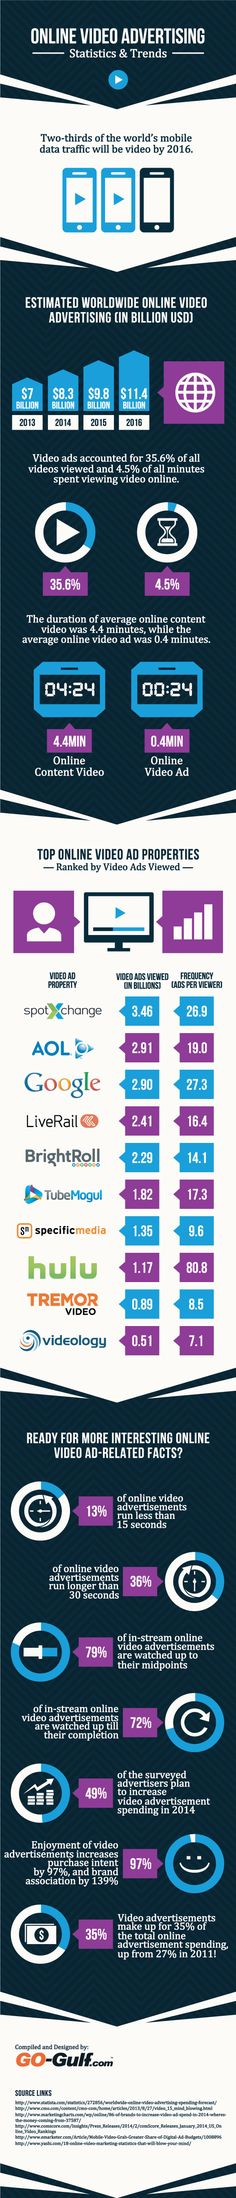 Online video advertising: statistics and trends #infographic | via #BornToBeSocial